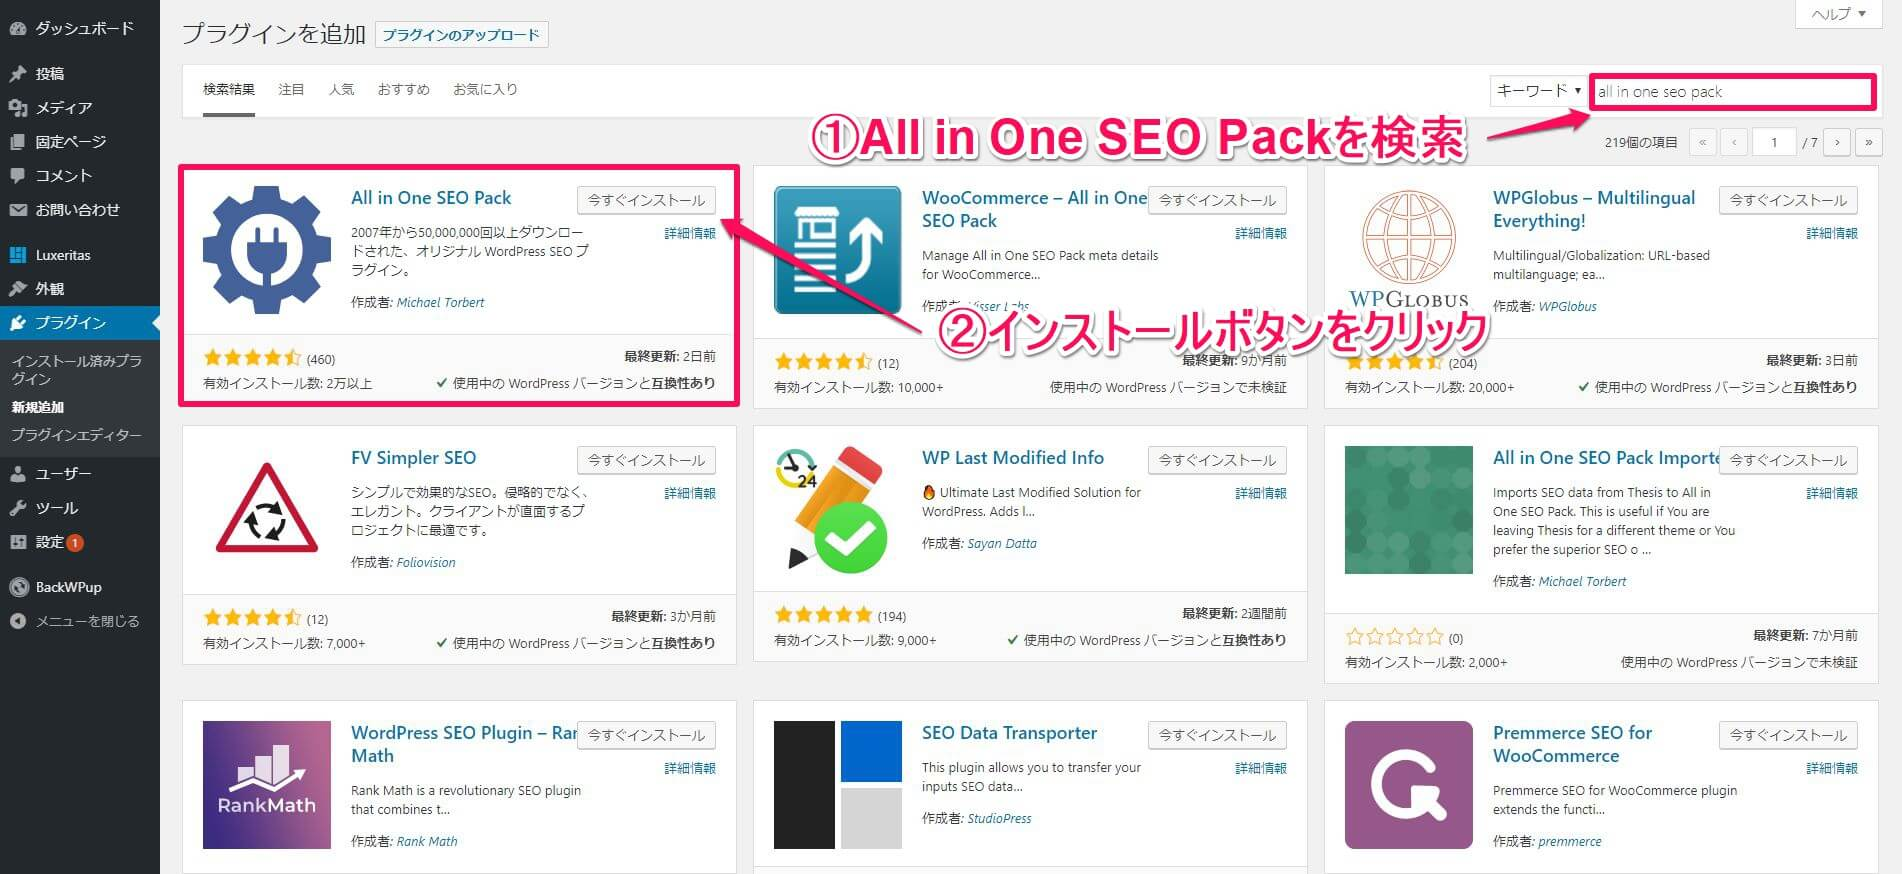 All in One SEO Pack設定方法①